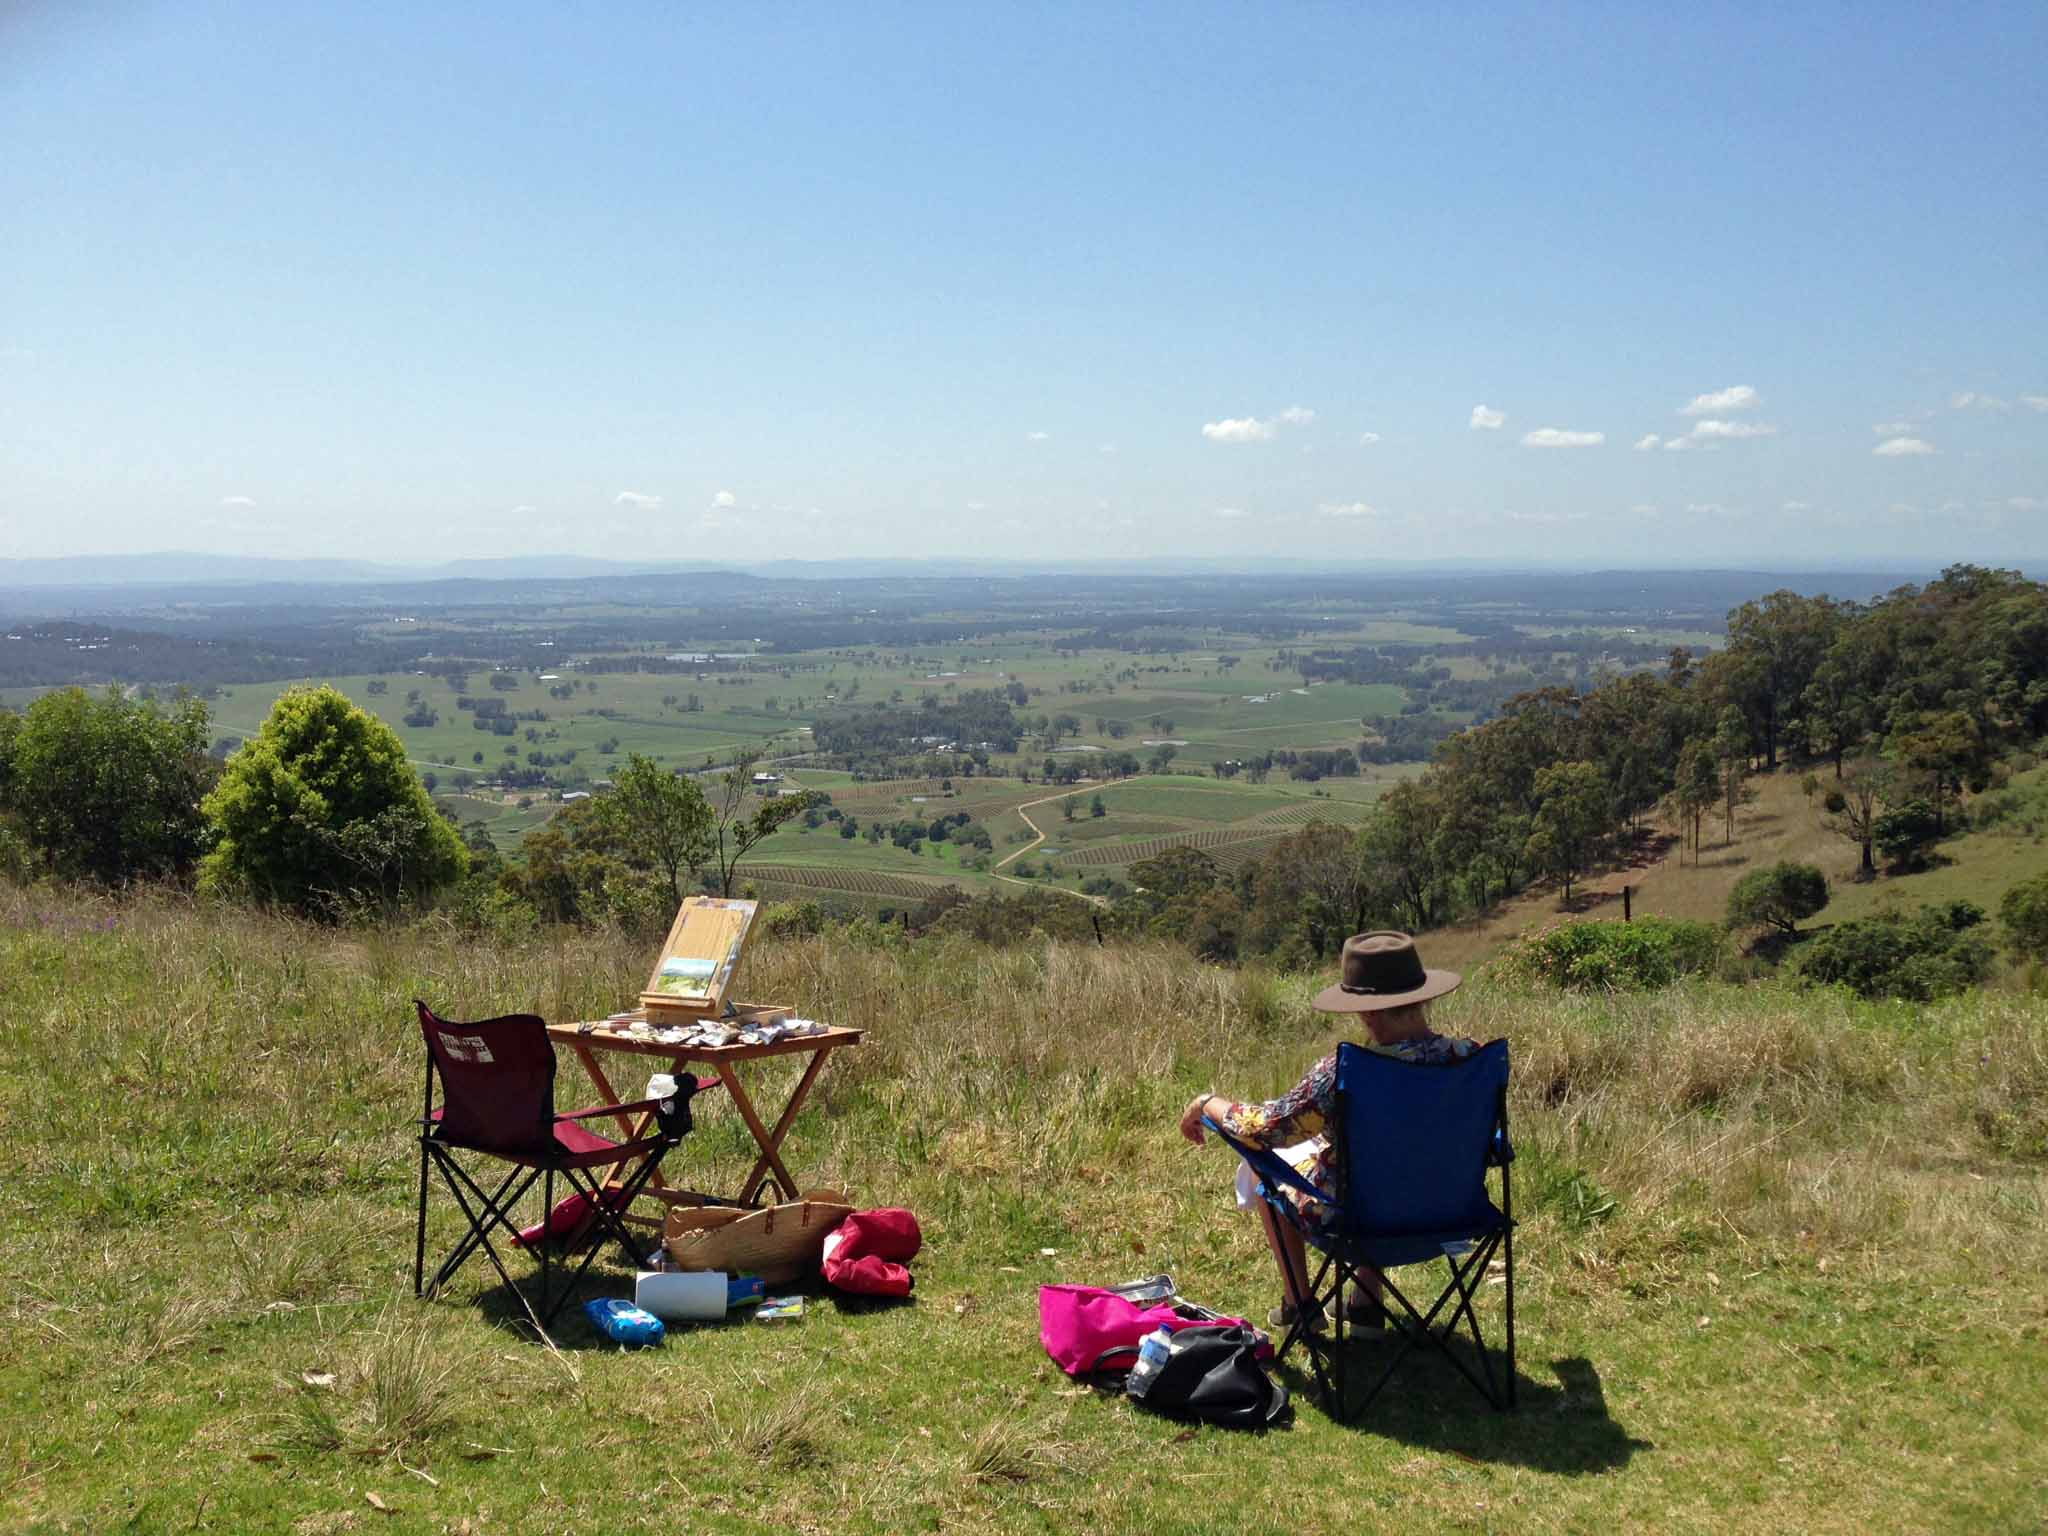 With my painting buddy Jacquie. View looking down to Ivanhoe, Lindeman, Tinkler and Drayton vineyards from Mount View.